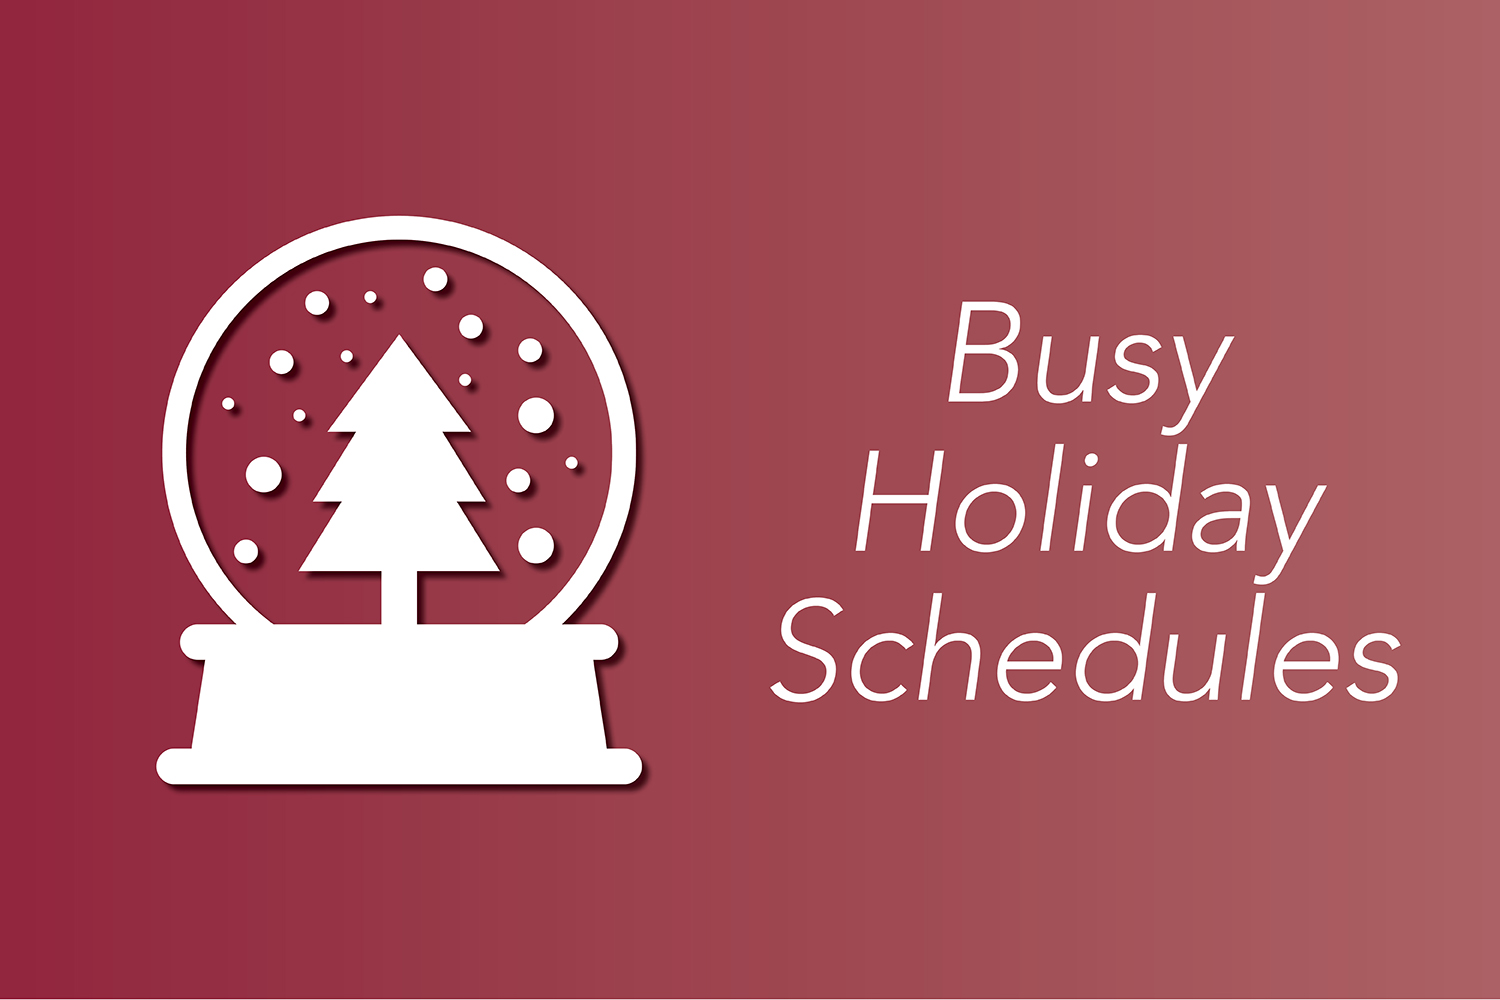 Busy Holiday Schedule